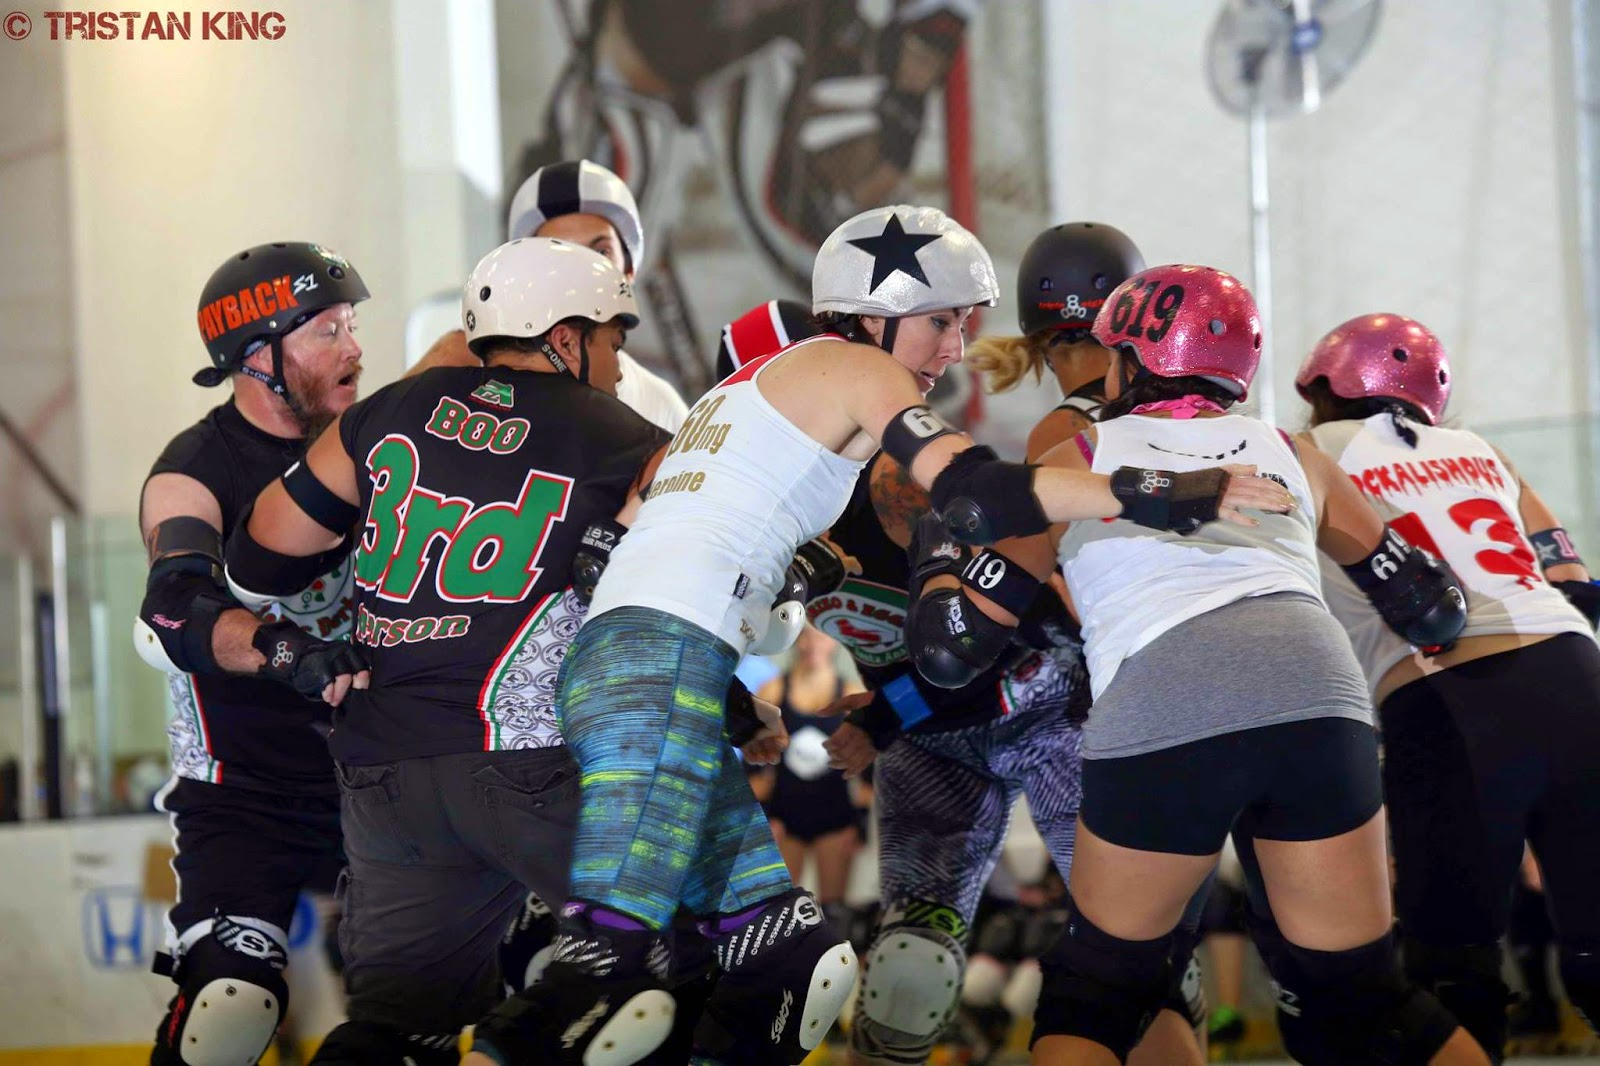 Roller skating visalia - That Skater Is Acdg S Black Star Heronine And She Ll Sweep Your Ass Up Faster Than A Craftman Leaf Blower Clears A Sidewalk